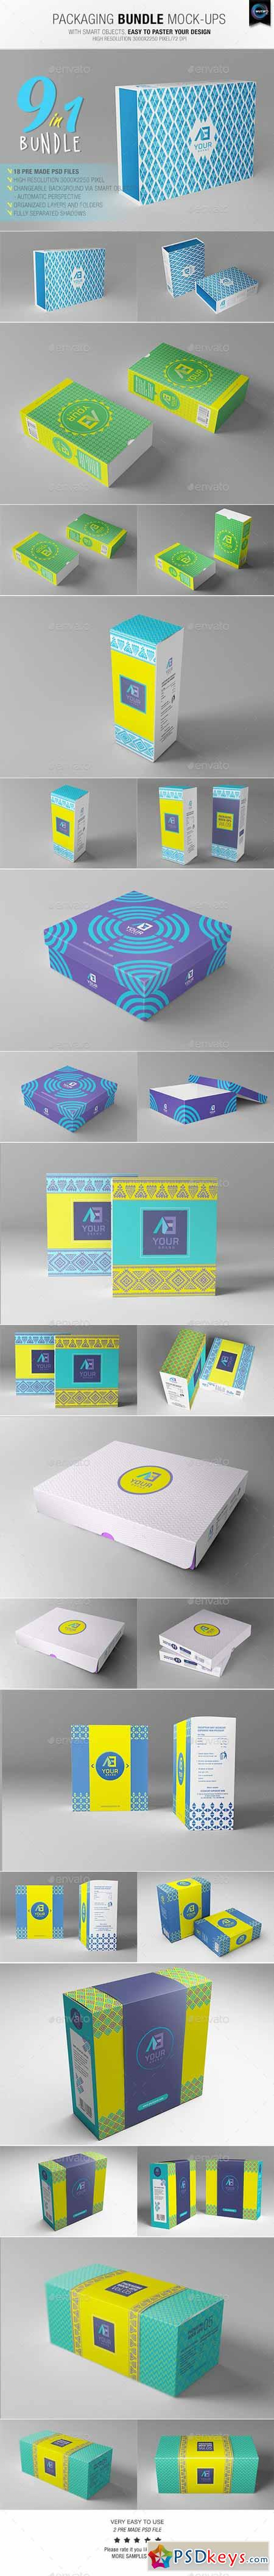 Packaging Bundle Mock-Ups 10581137